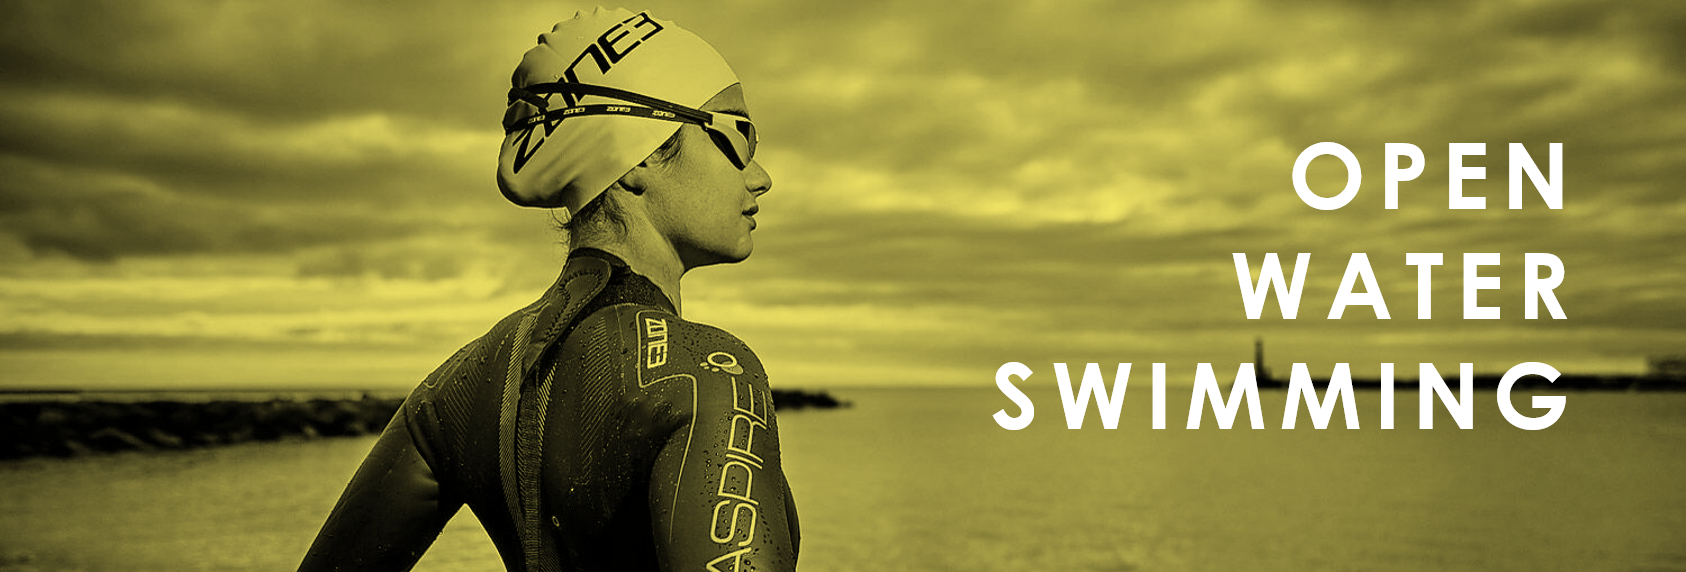 TriPath - Triathlon Open Water Swimming Training Resources, Tips and Advice